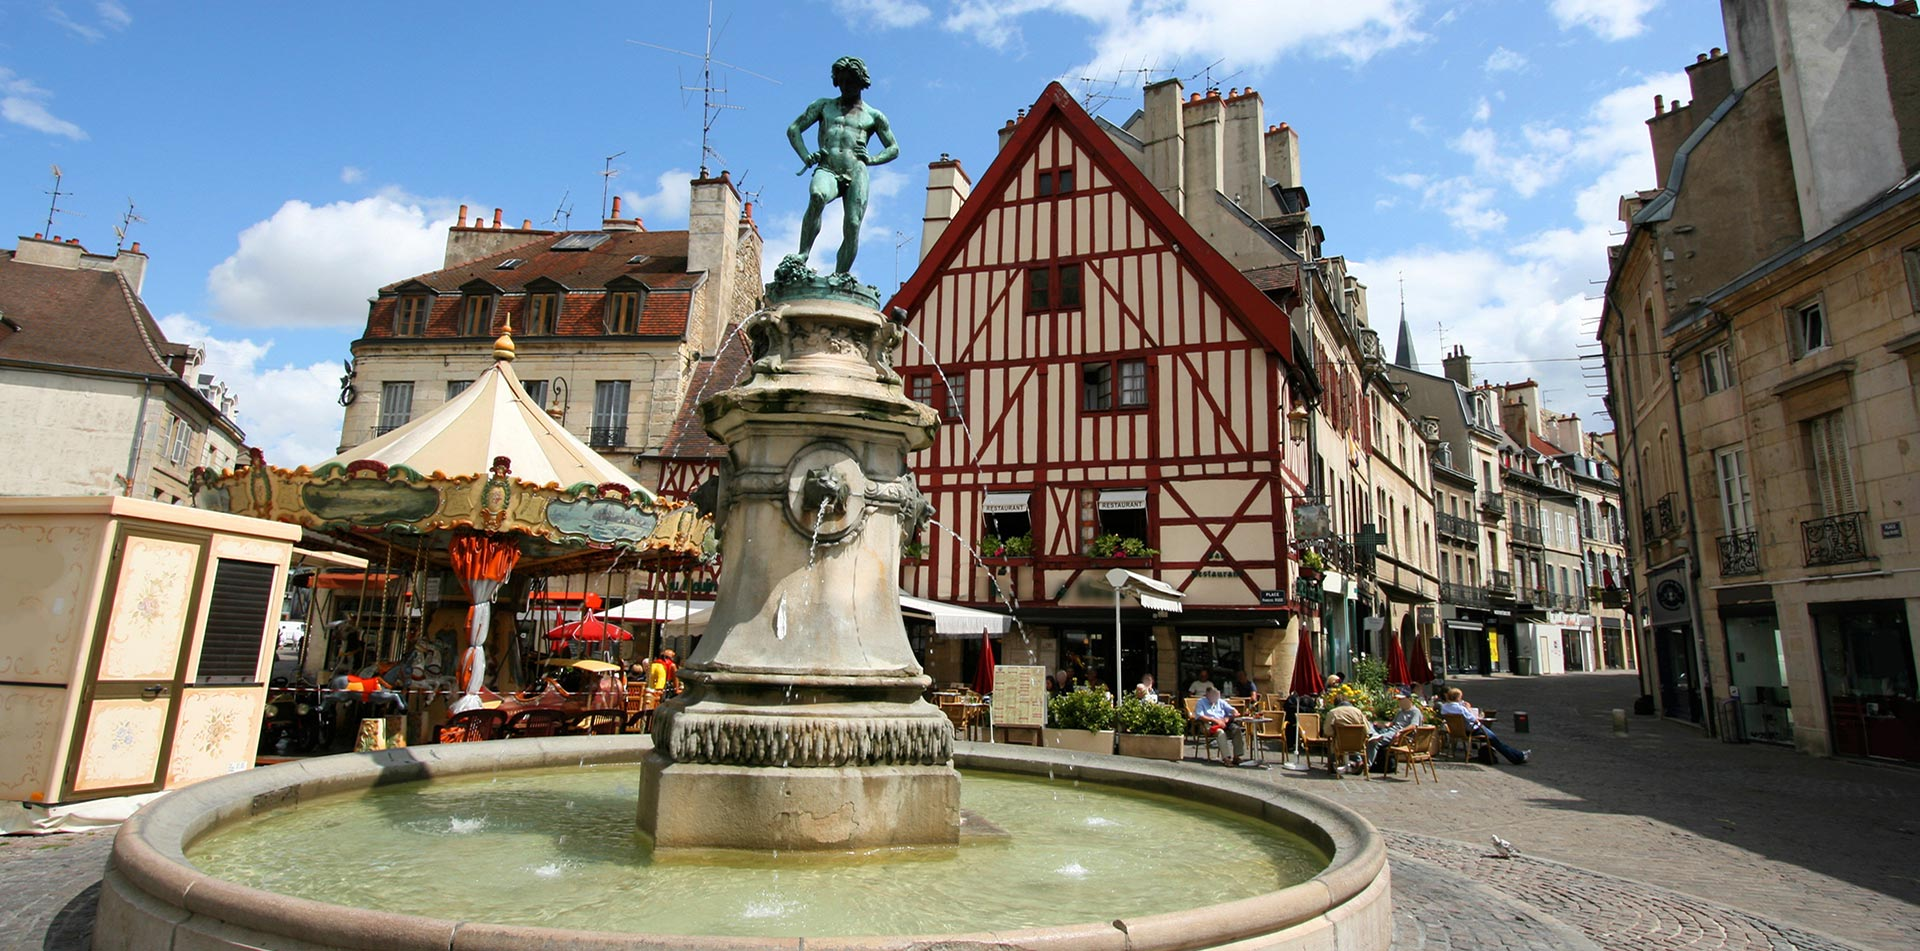 Europe France Dijon Francois-Rude square with fountain and traditional buildings - luxury vacation destinations